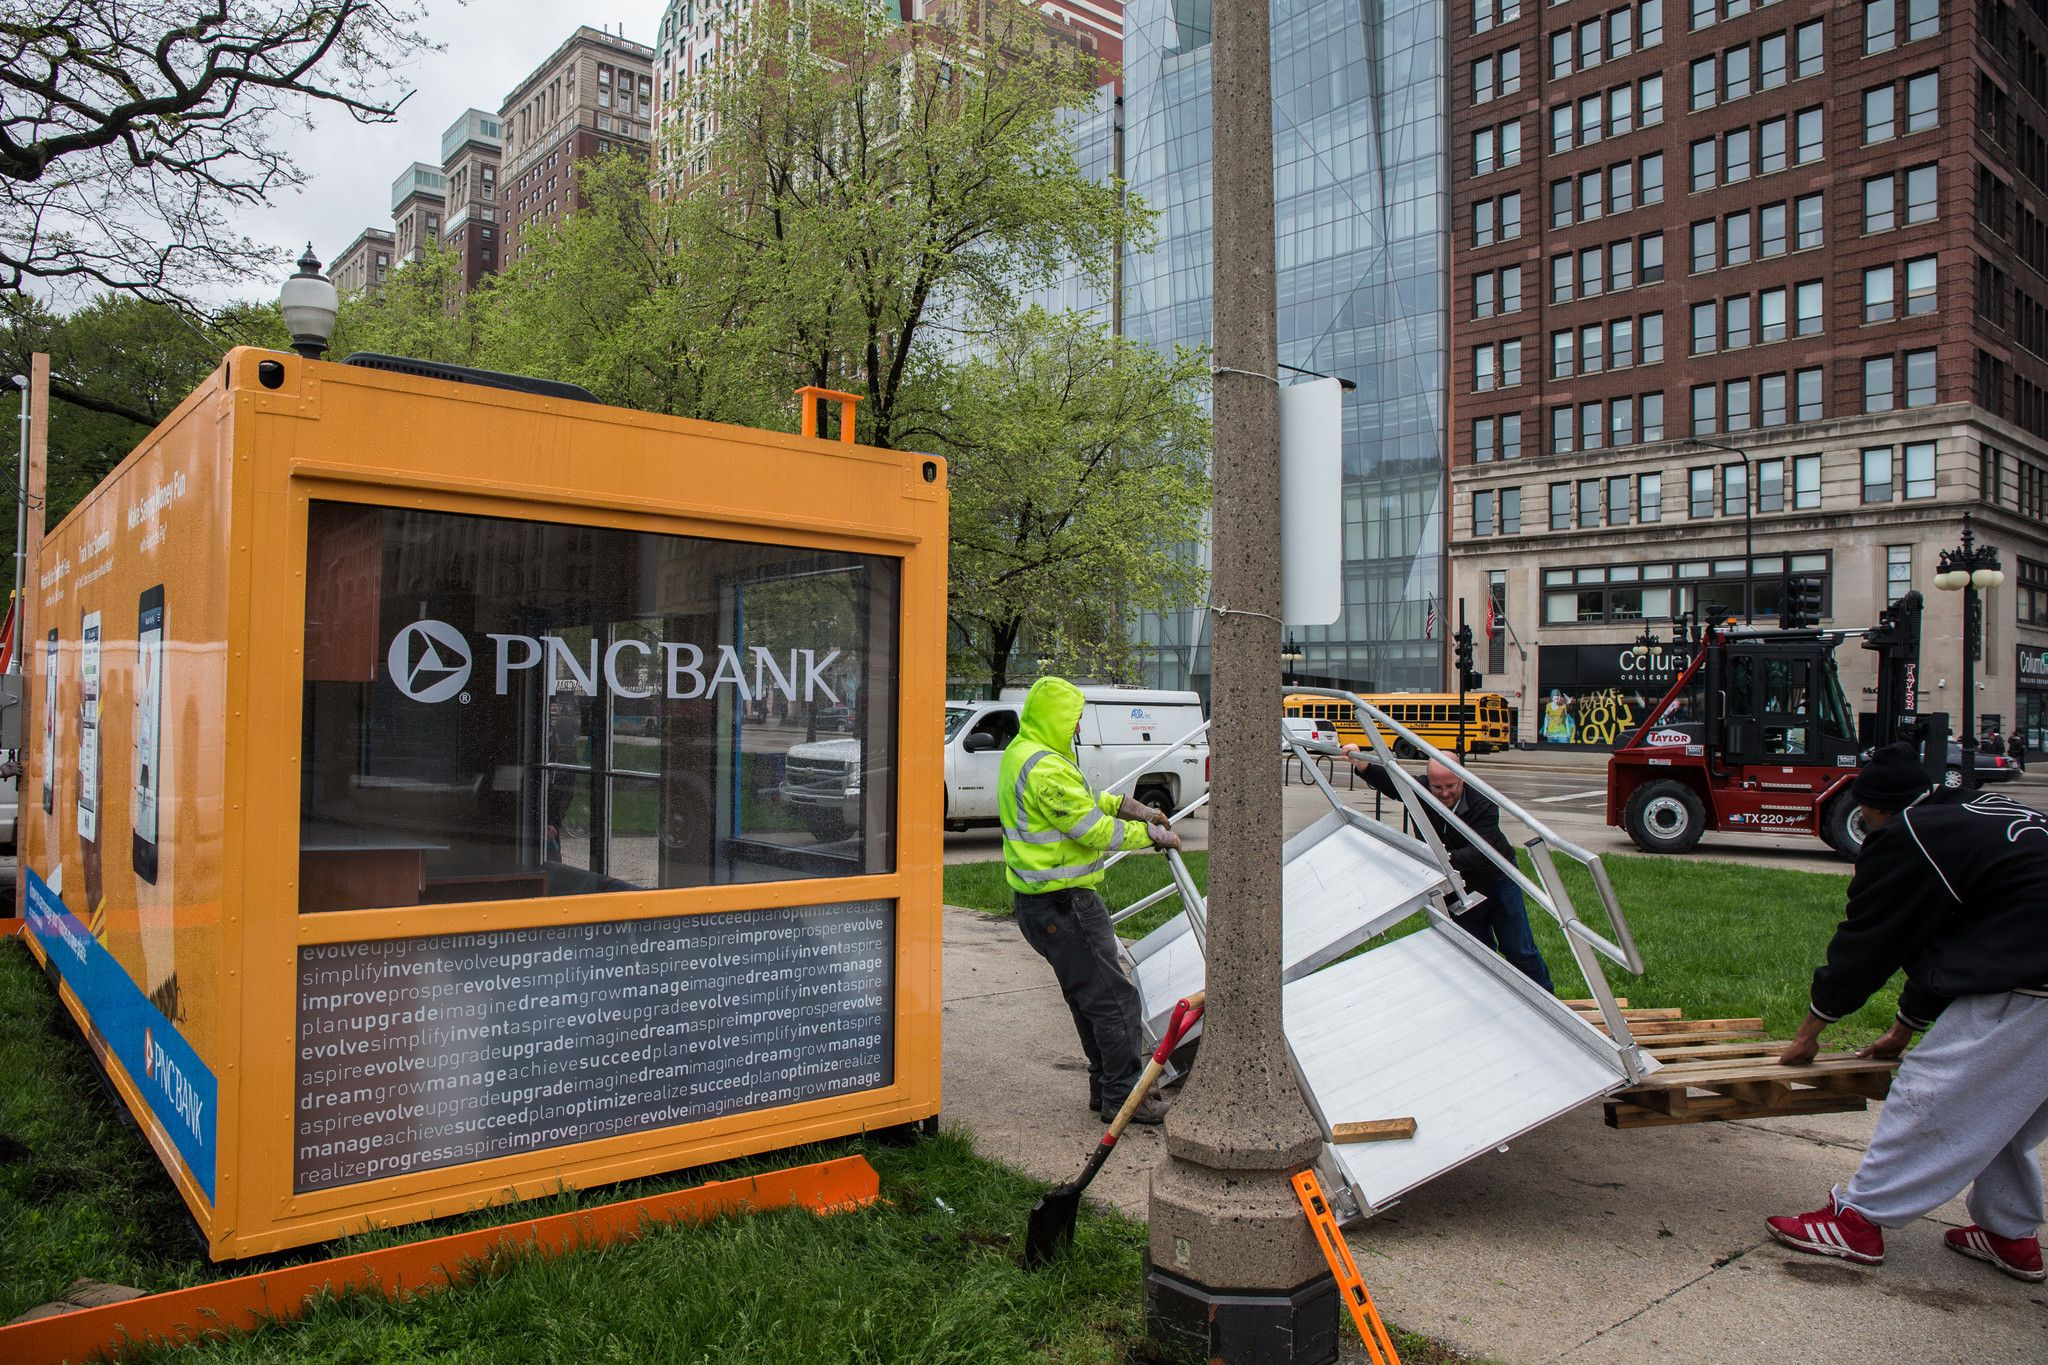 Pop-up' bank branch opens in Chicago | Pop Up Ideas